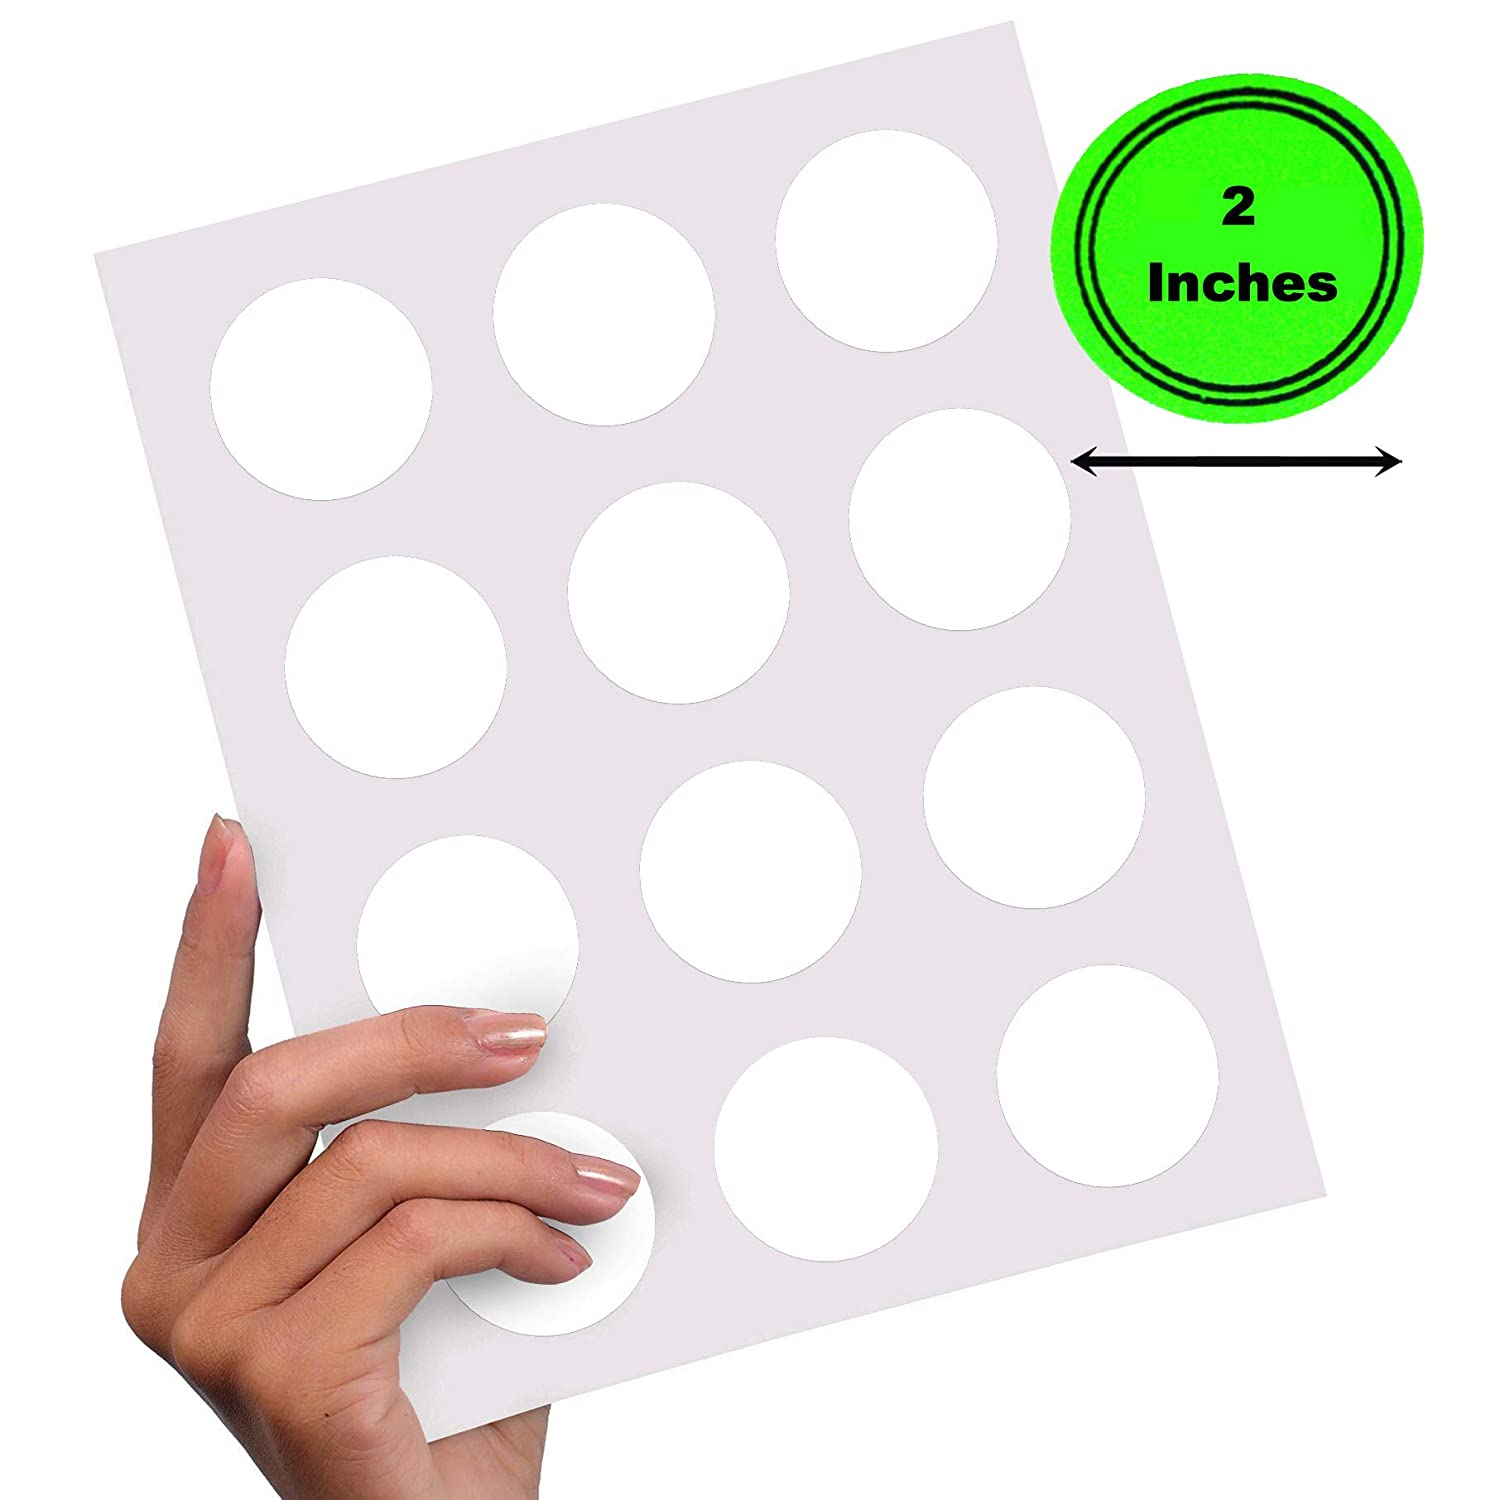 picture about Printable Circle Labels named 180 Labels, 2 Inch Spherical Labels Printable Labels (15 Sheets of 12 Rounds)  White Printable Sticker Paper for Printer Circle Template Sticker Labels